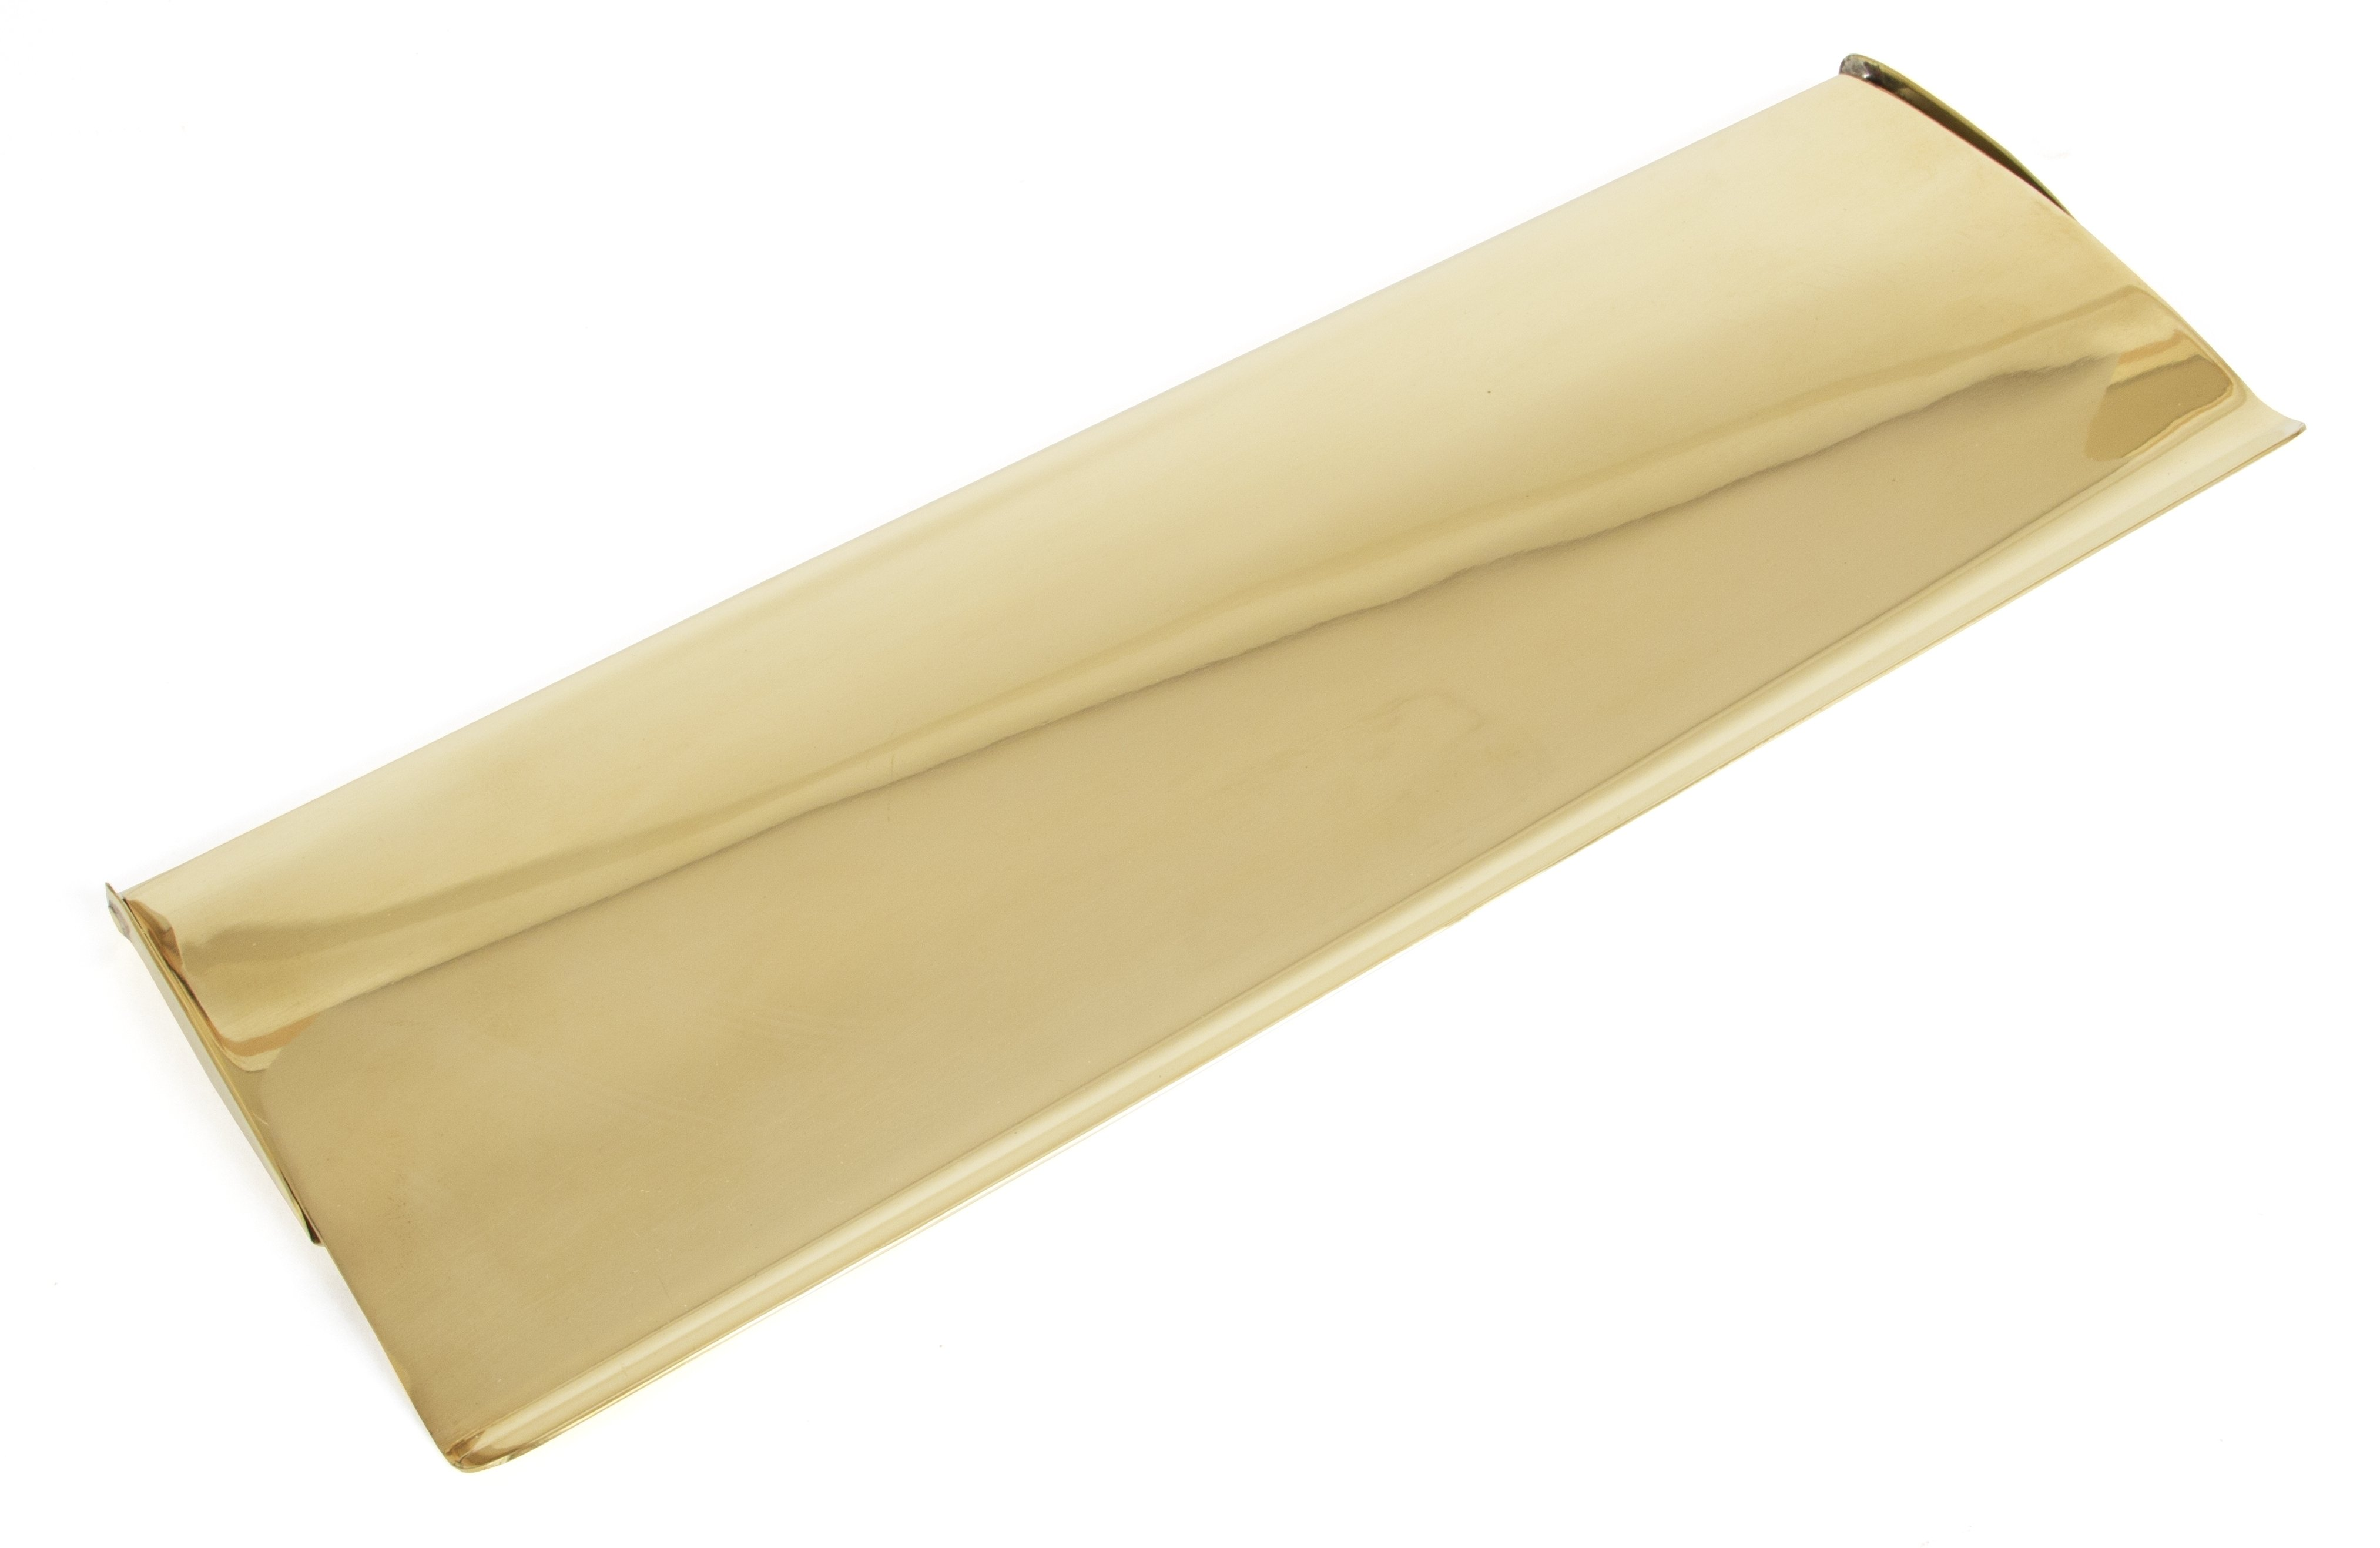 Polished Brass Letterplate Cover - Large image